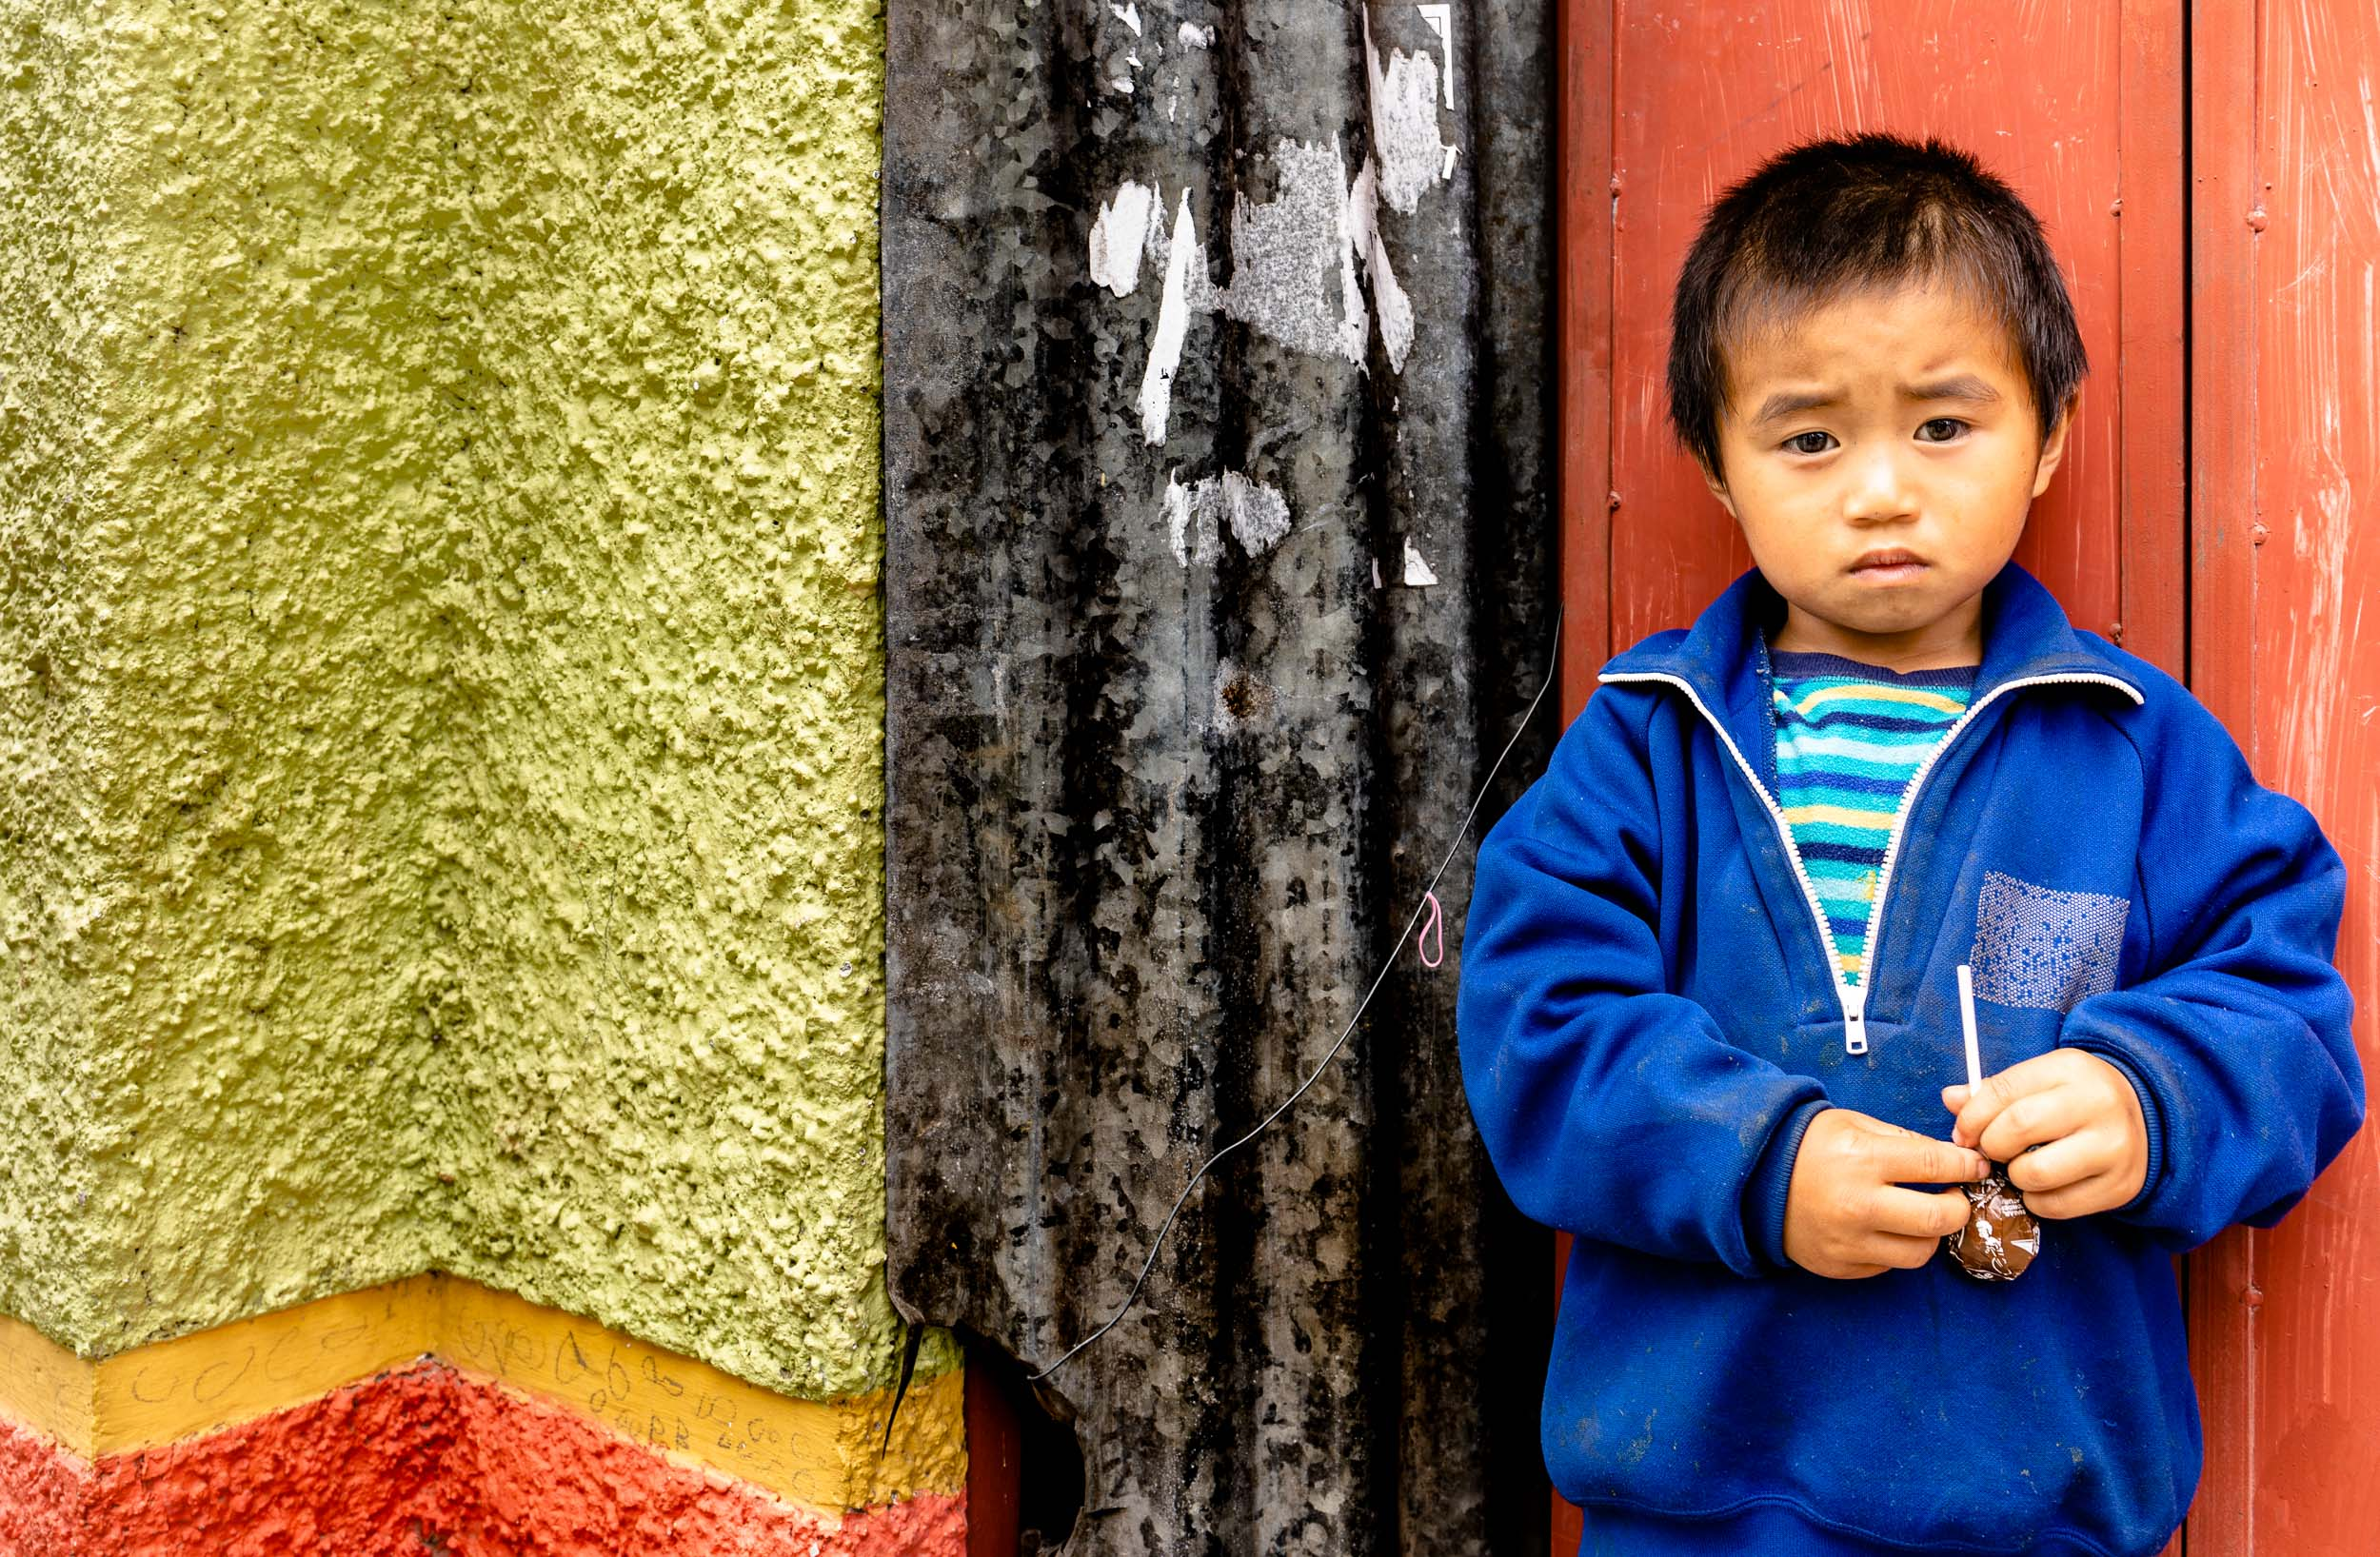 Philippines-Sagada-Boy-Blue-Jacket